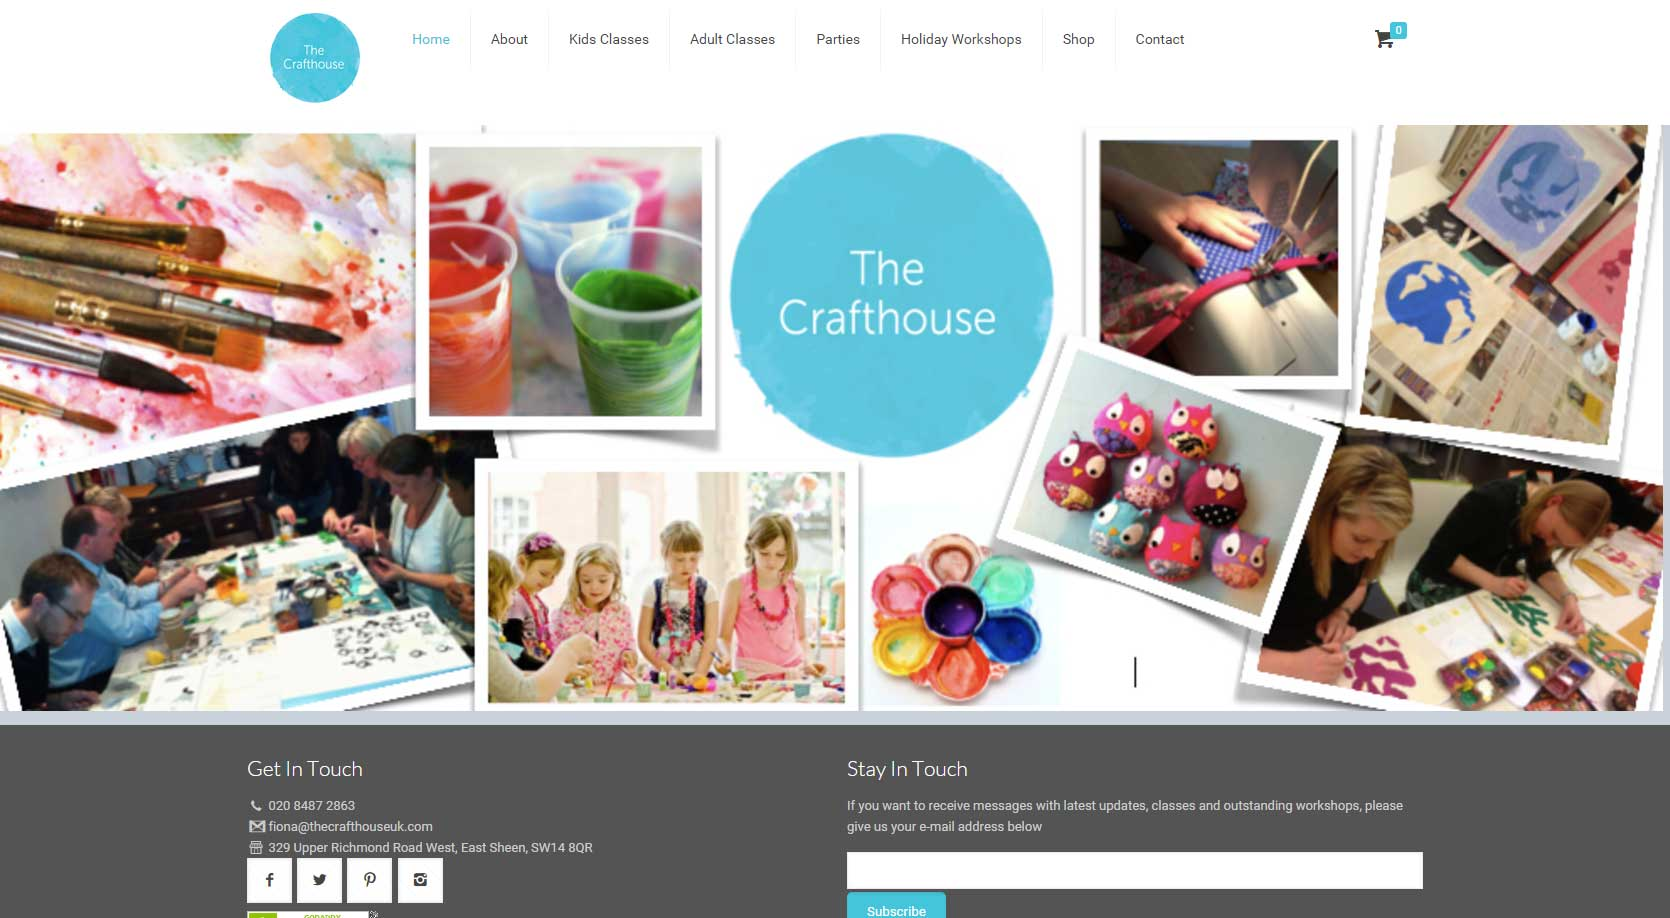 thecrafthouse